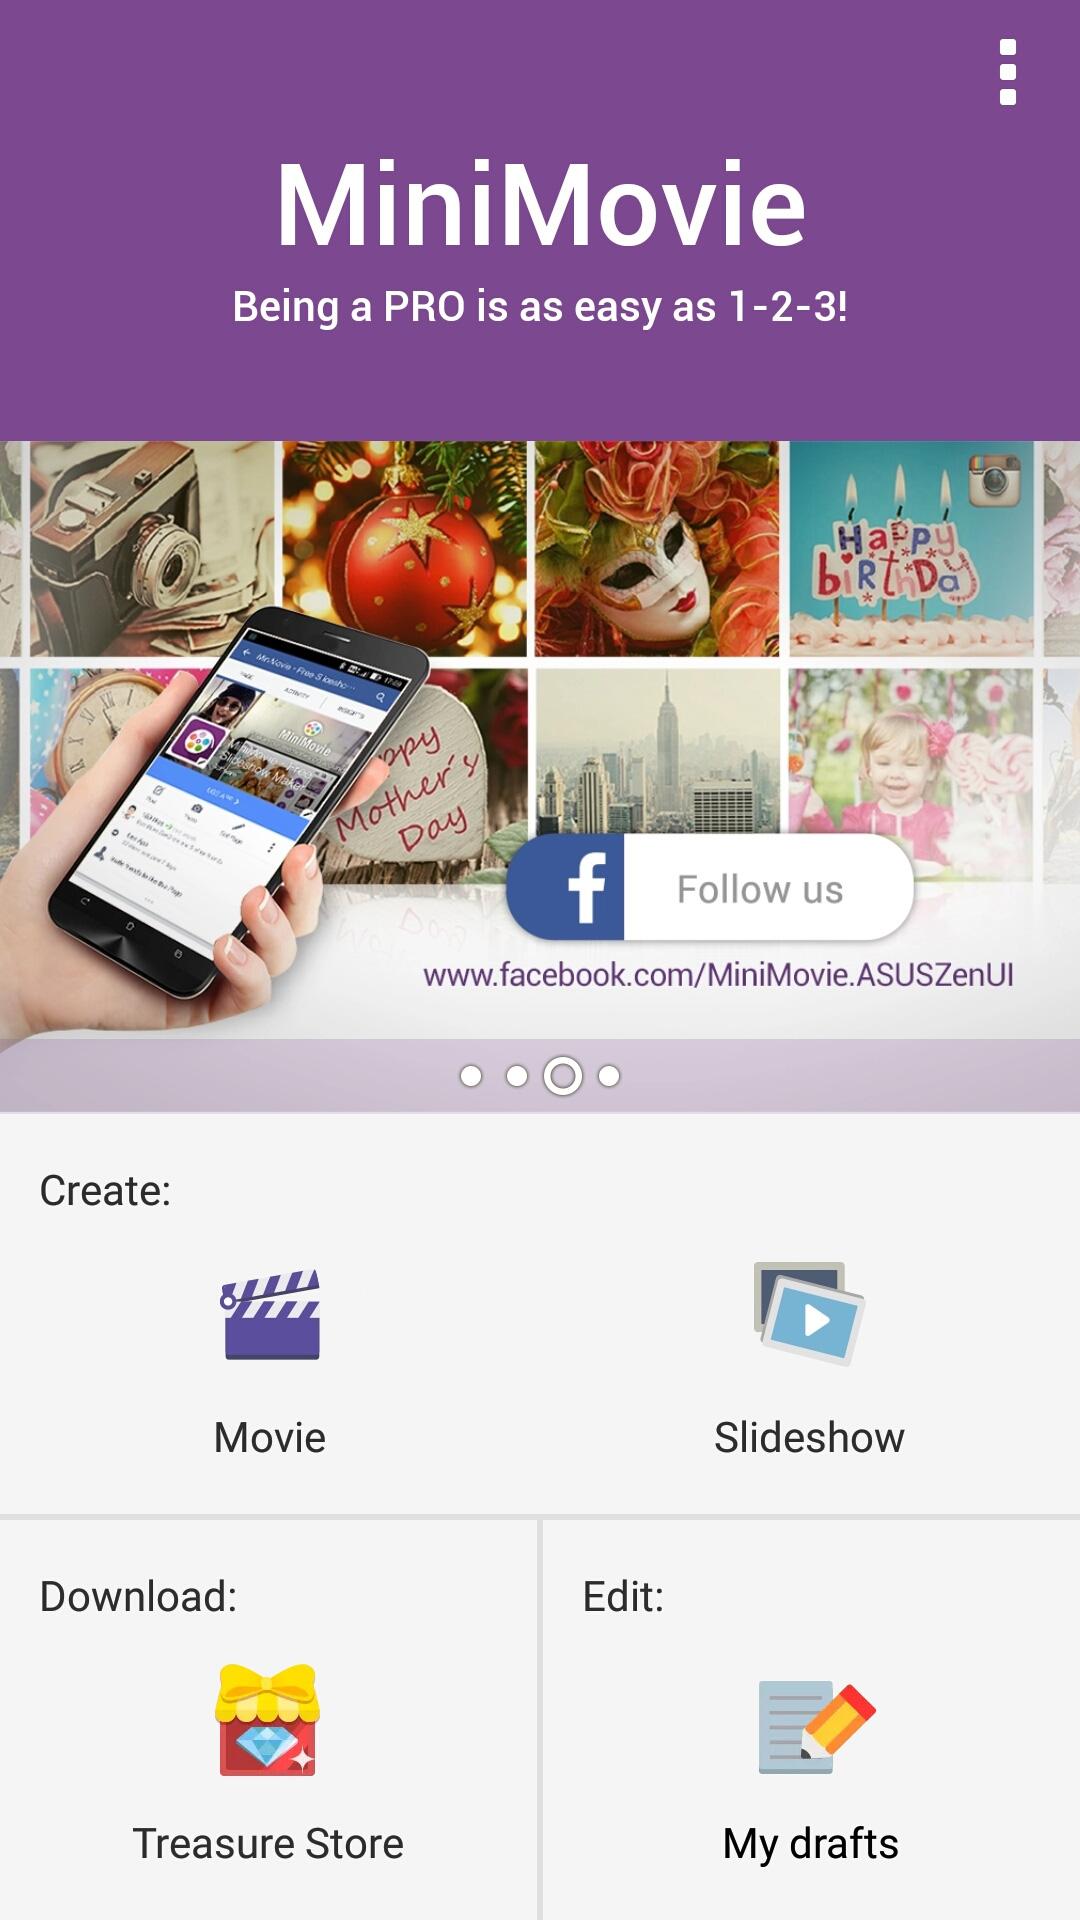 Make A Masterpiece With Asus Minimovie Mobile Asus Global